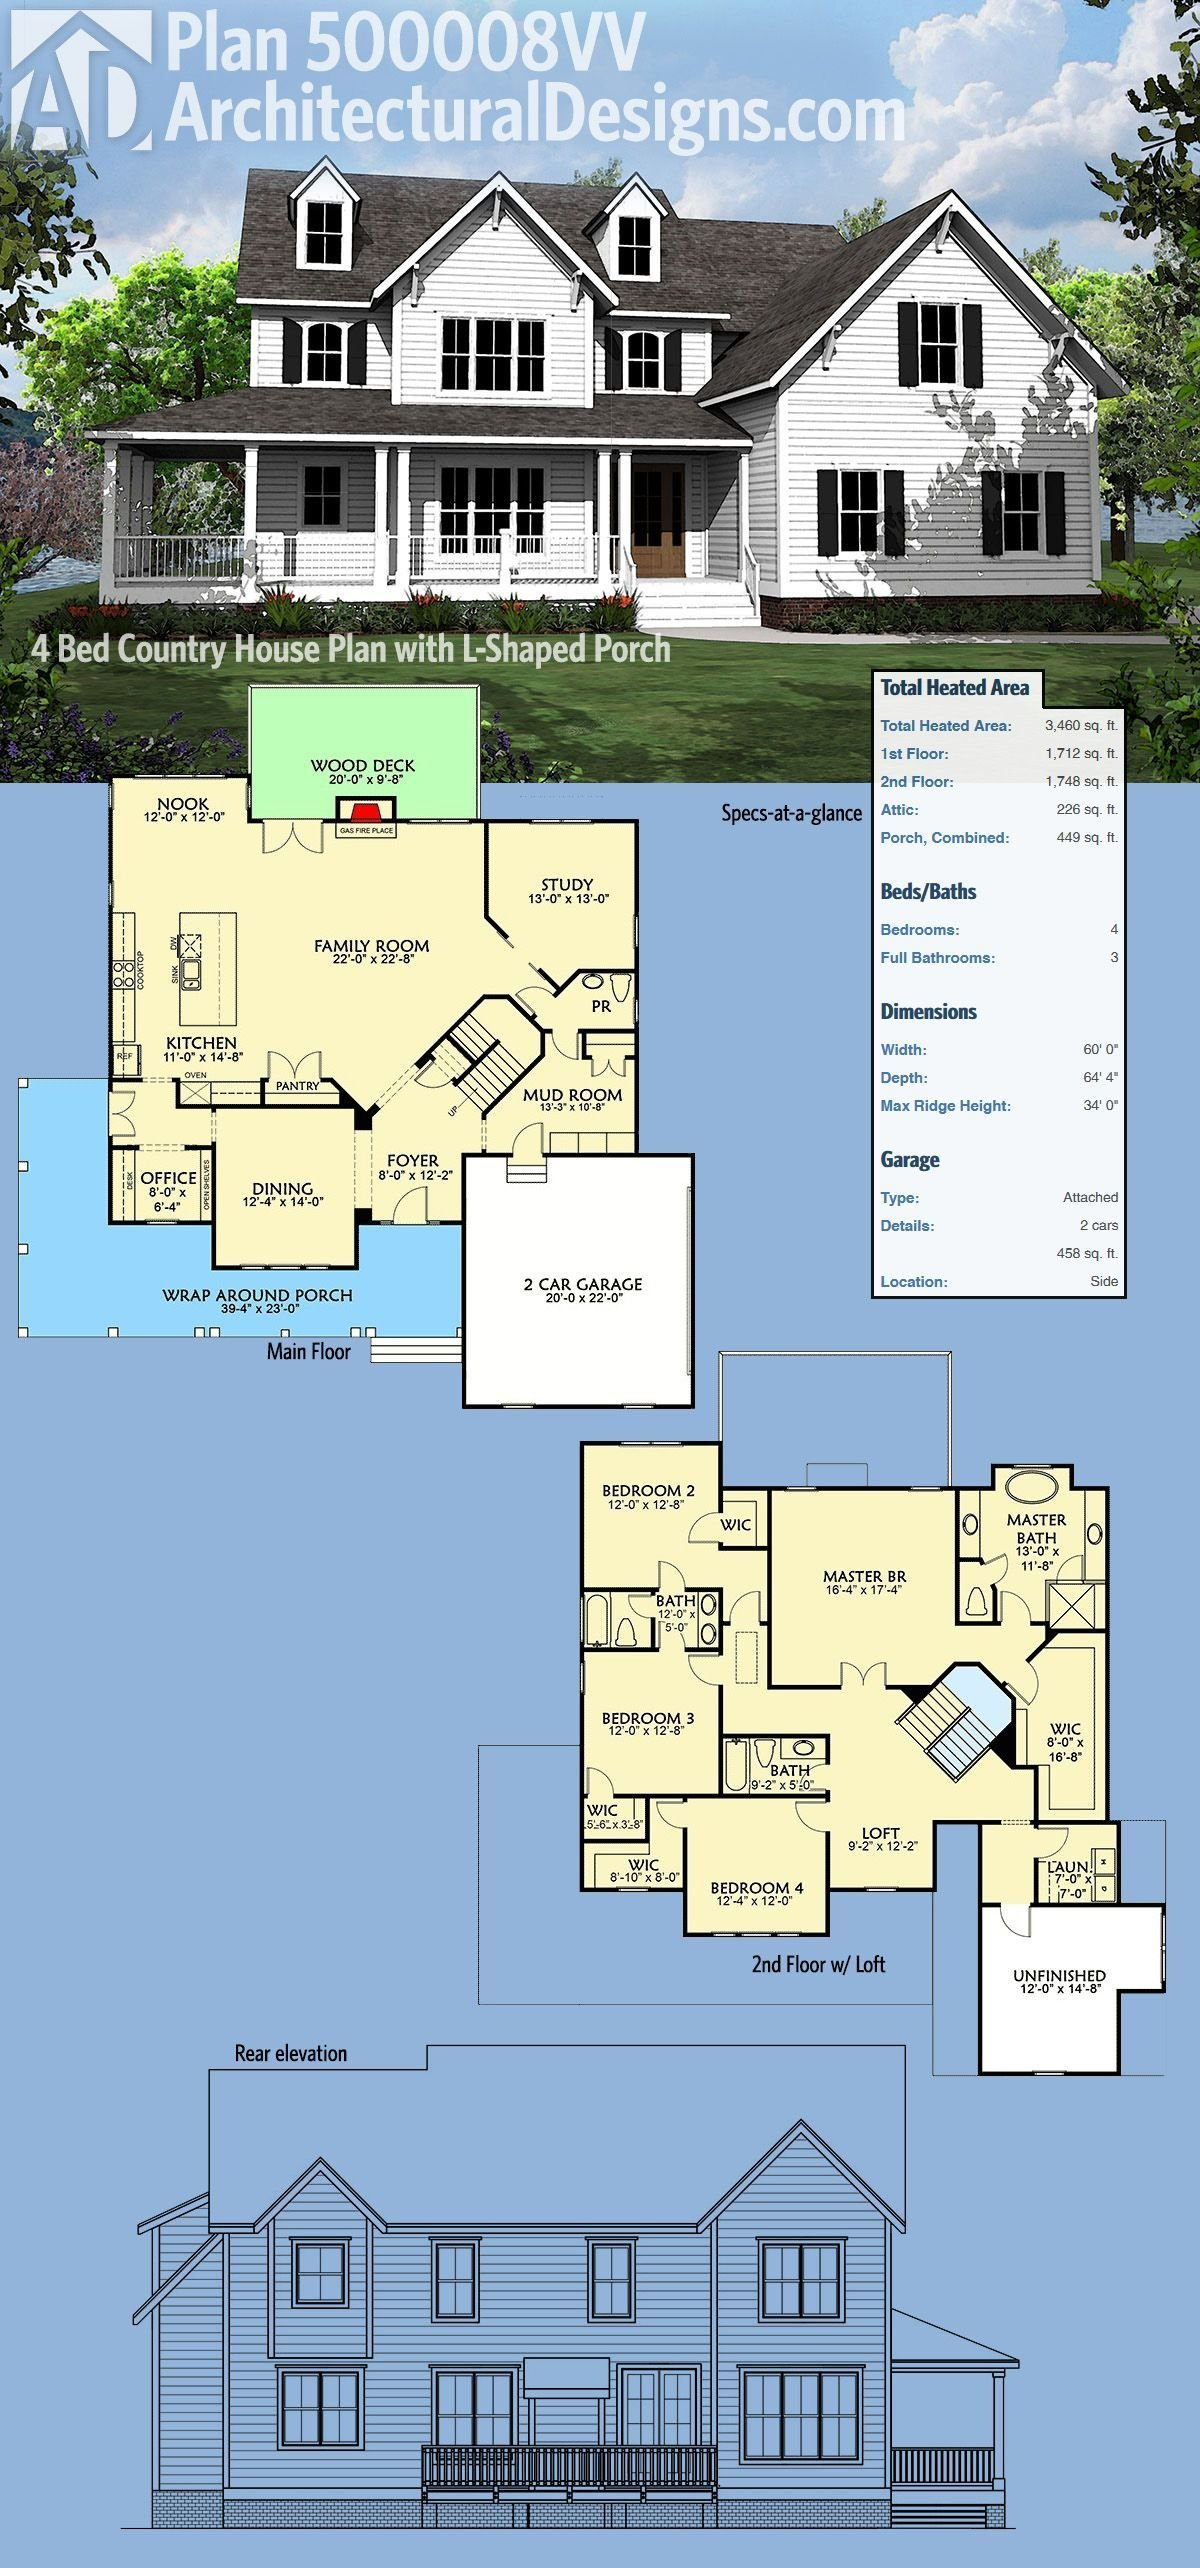 Best Plan 500008Vv 4 Bed Country House Plan With L Shaped With Pictures